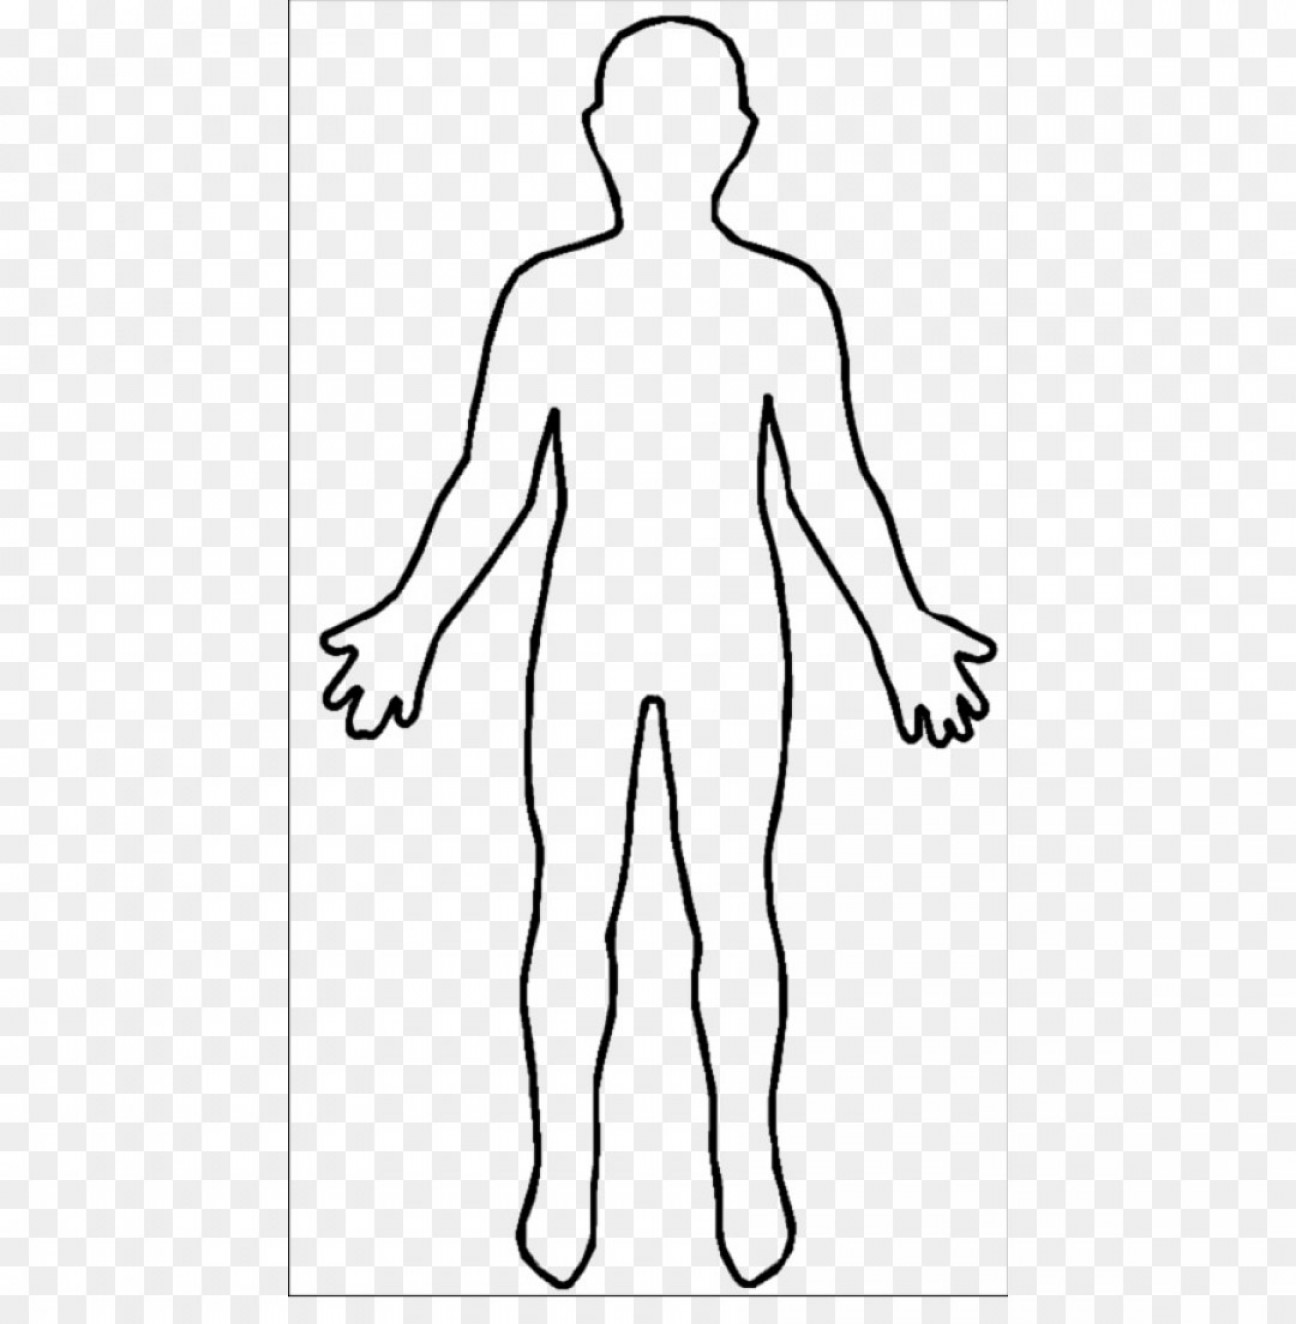 Human Body Outline Vector: Lungs And Human Body Download Royalty Free Vector File Eps Clipart Picture Of